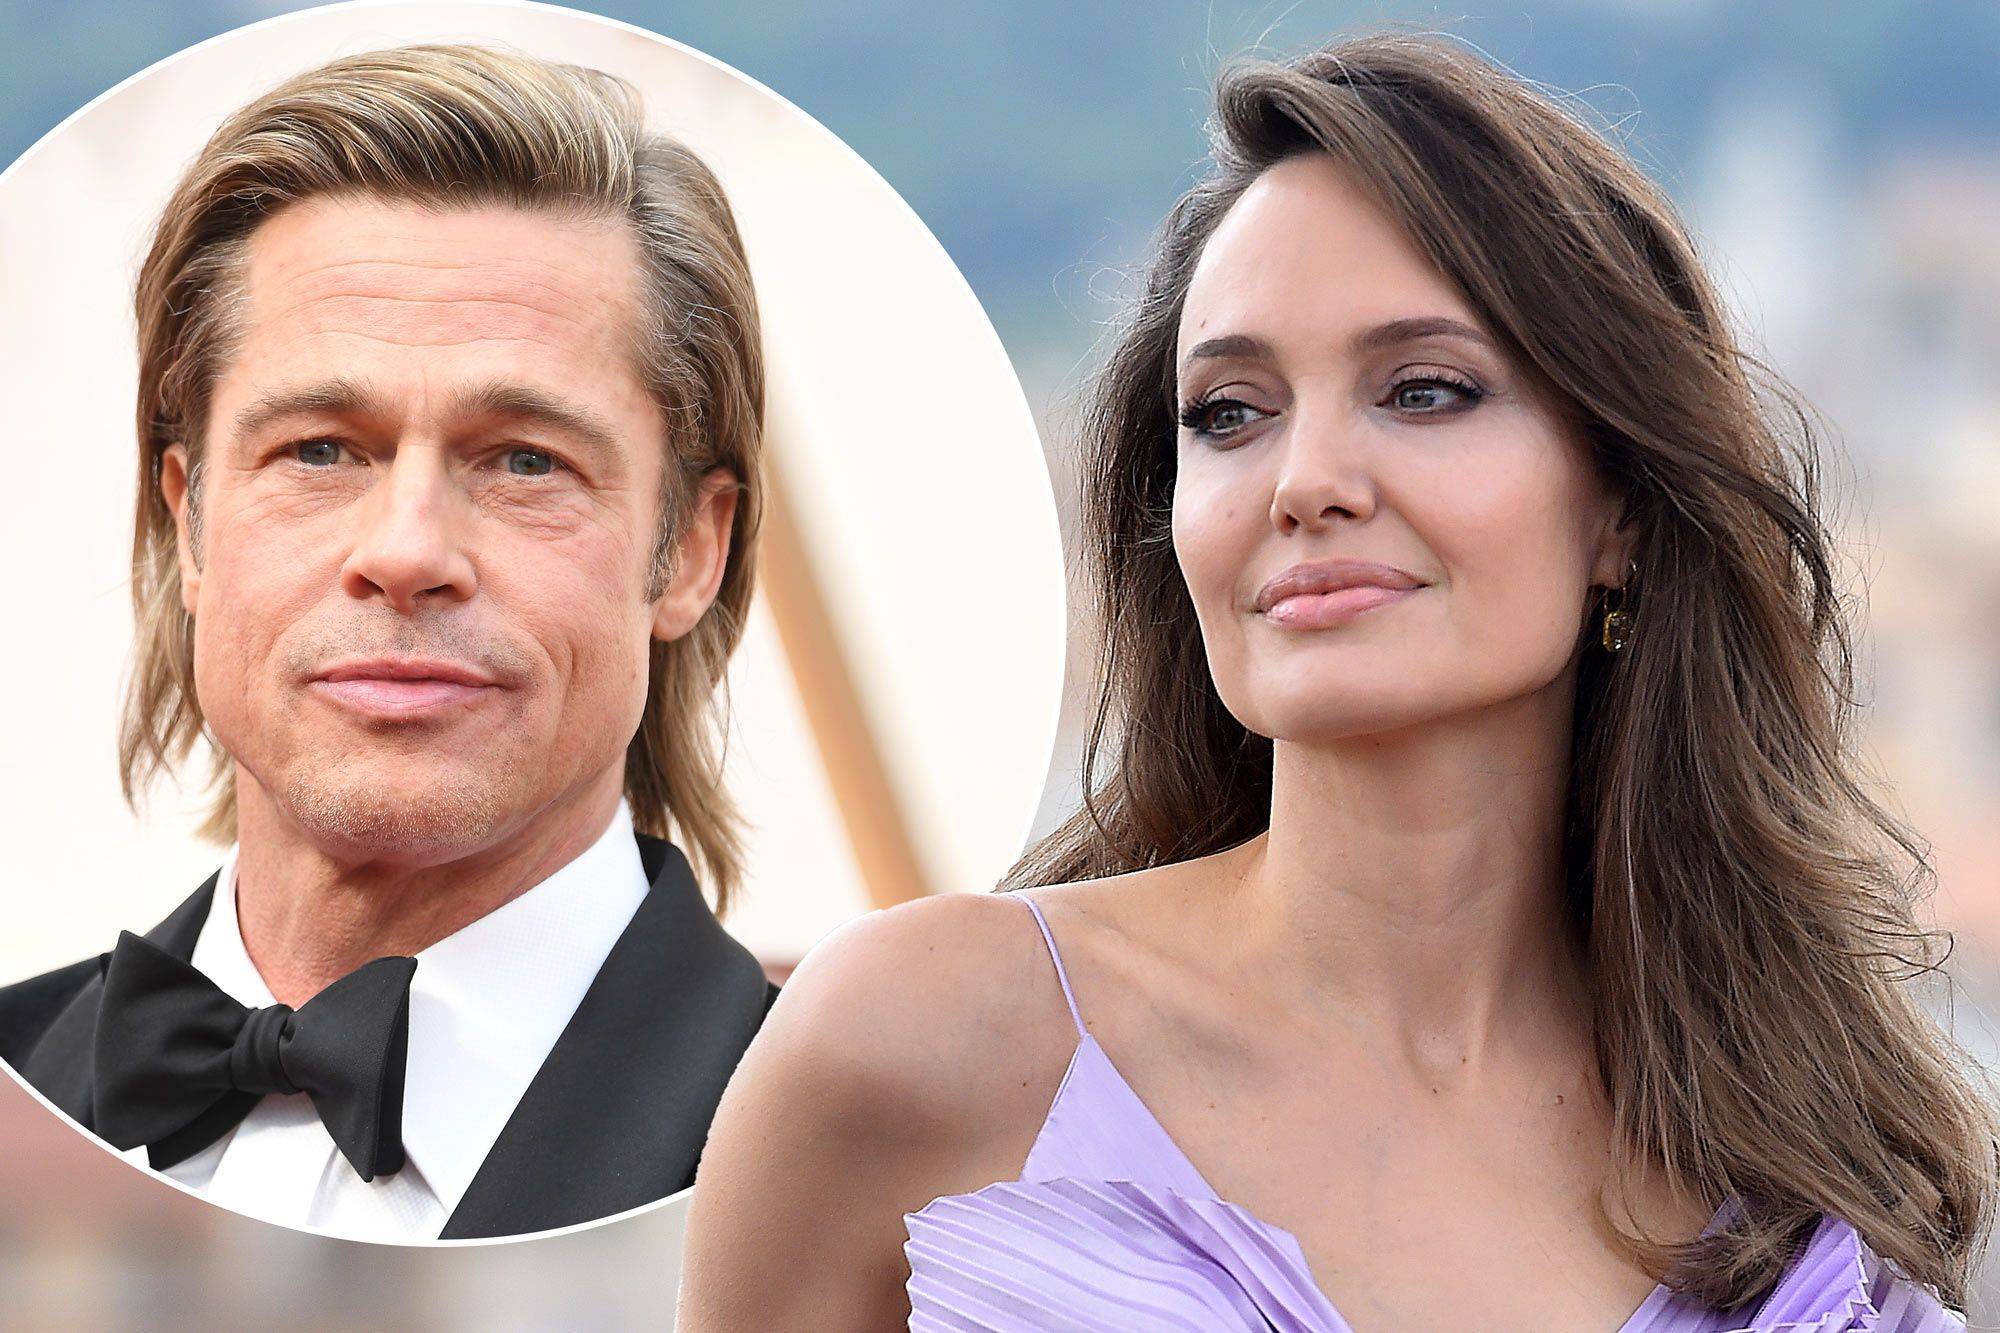 angelina-jolie-suggests-her-return-to-the-big-screen-was-a-result-of-her-divorce-from-brad-pitt